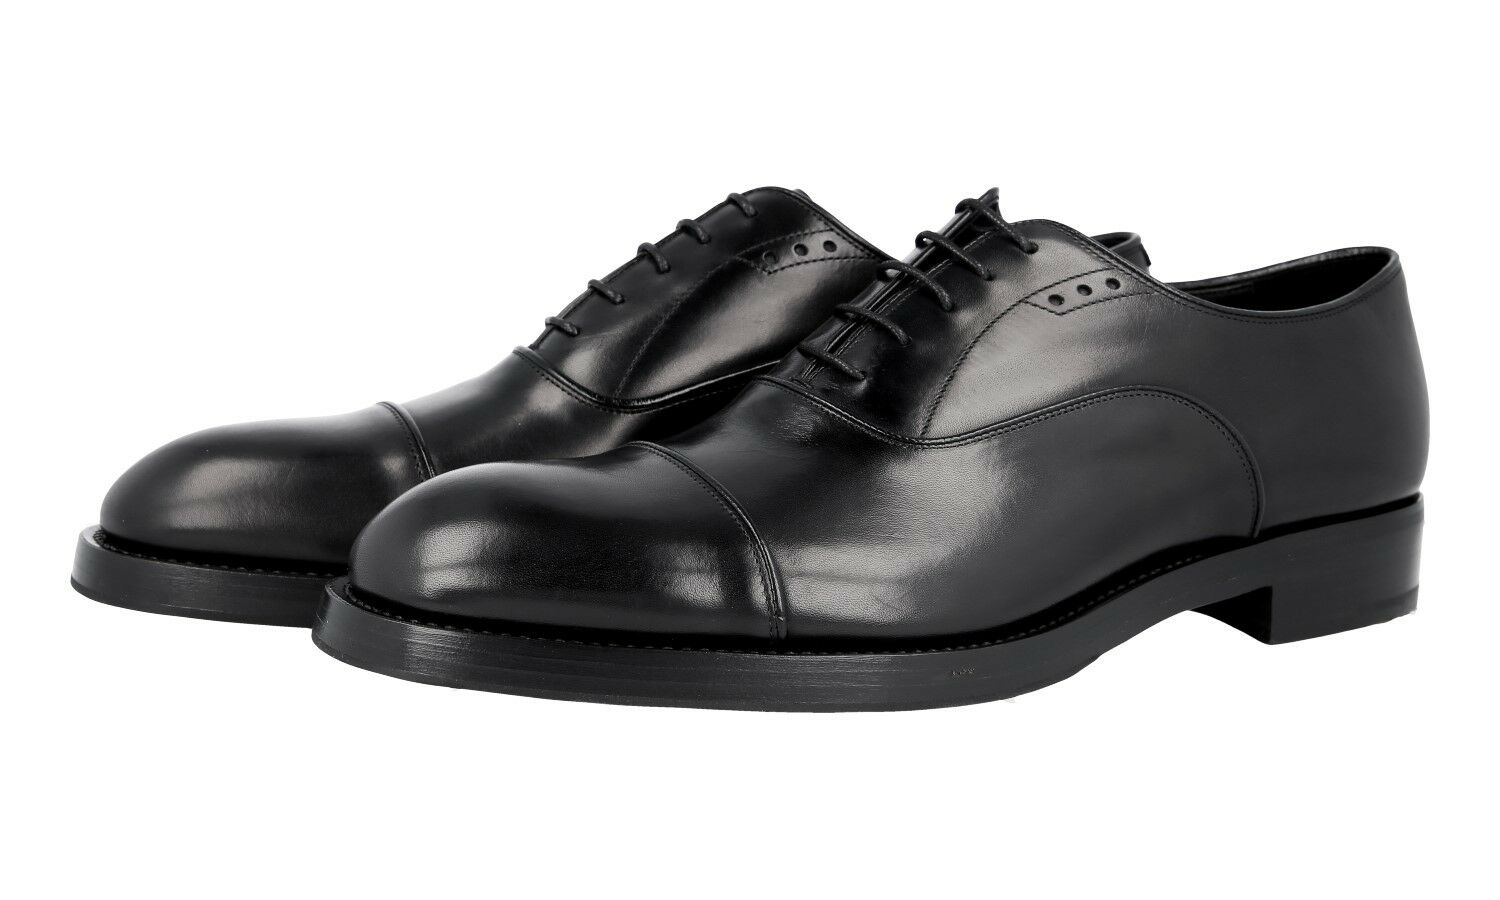 AUTH LUXURY PRADA CAP TOE OXFORD SHOES 2EA130 BLACK NEW US 10 EU 43 43,5